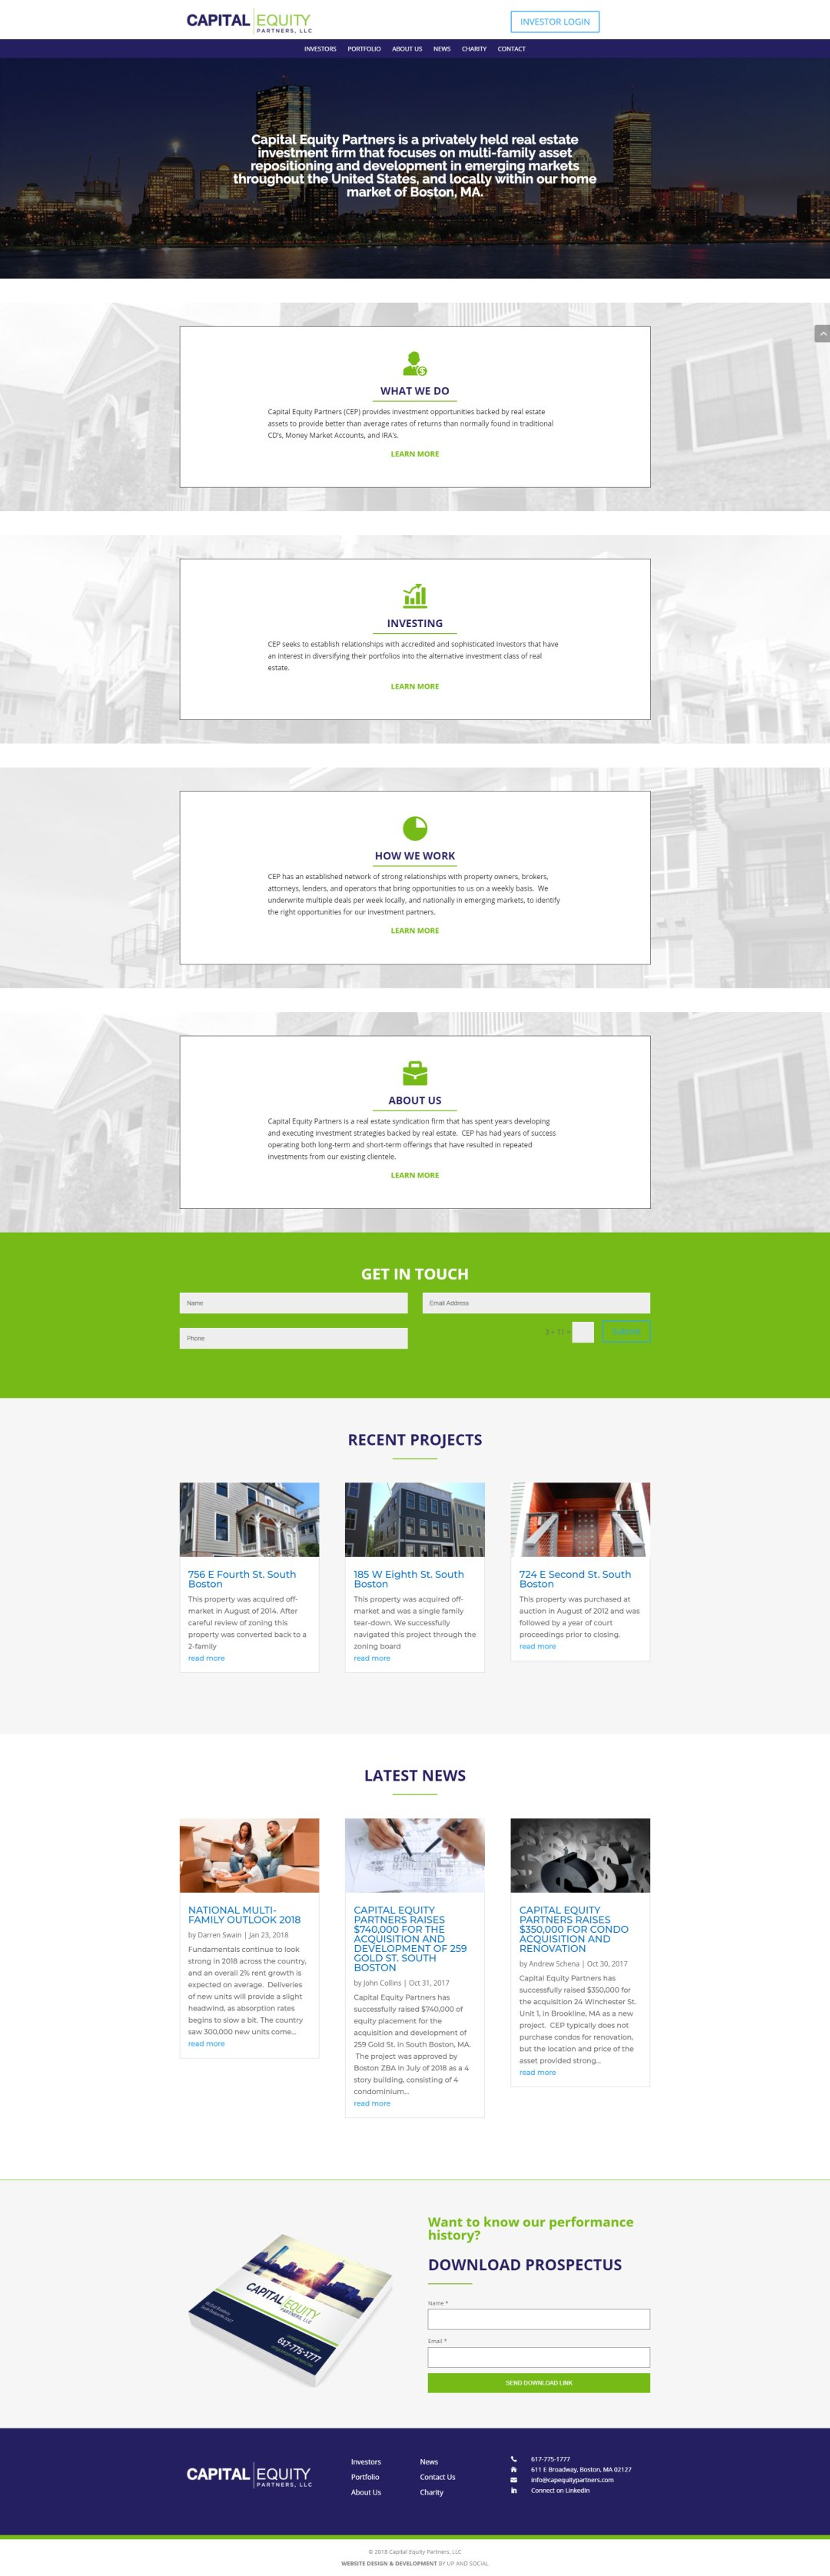 Investment Company Web Design